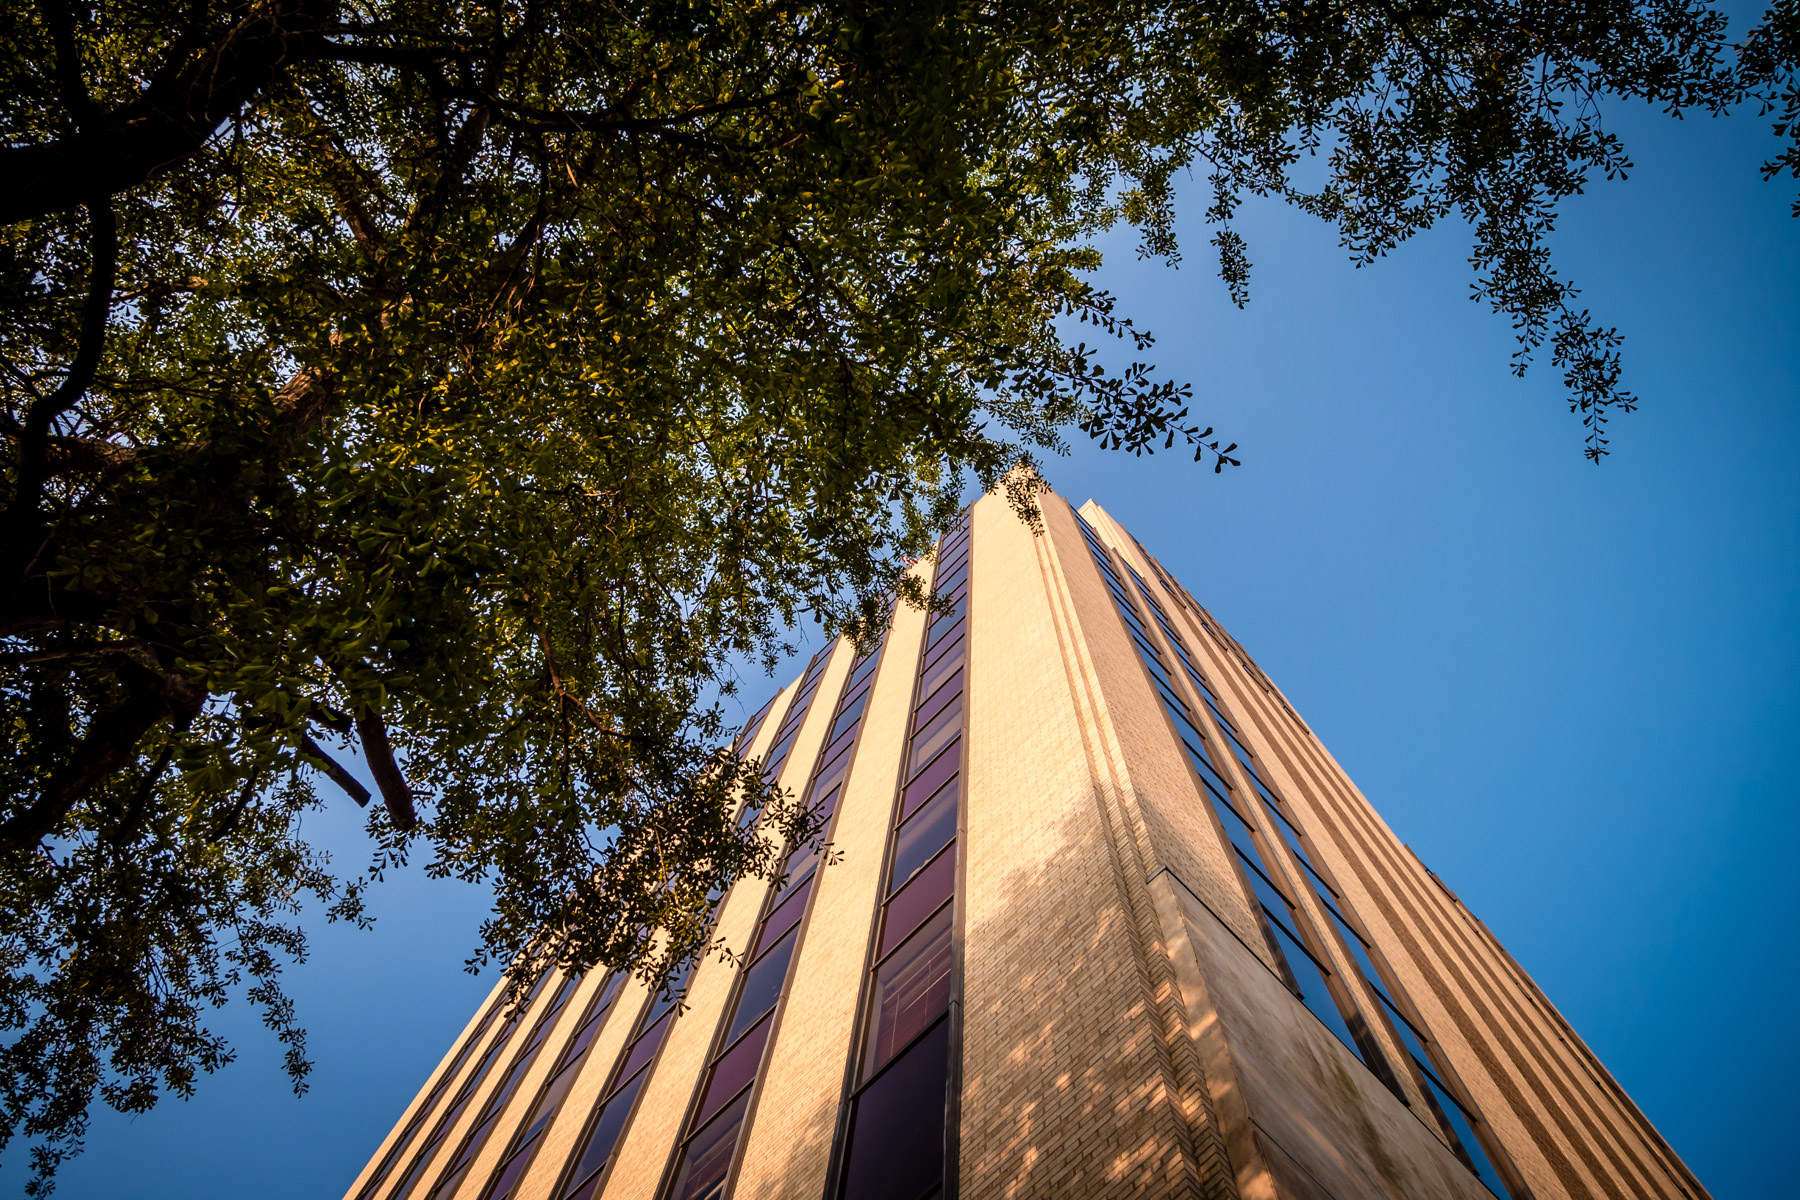 Tyler, Texas' People's Petroleum Building (built in 1933 as the People's National Bank) rises into the clear blue East Texas sky.